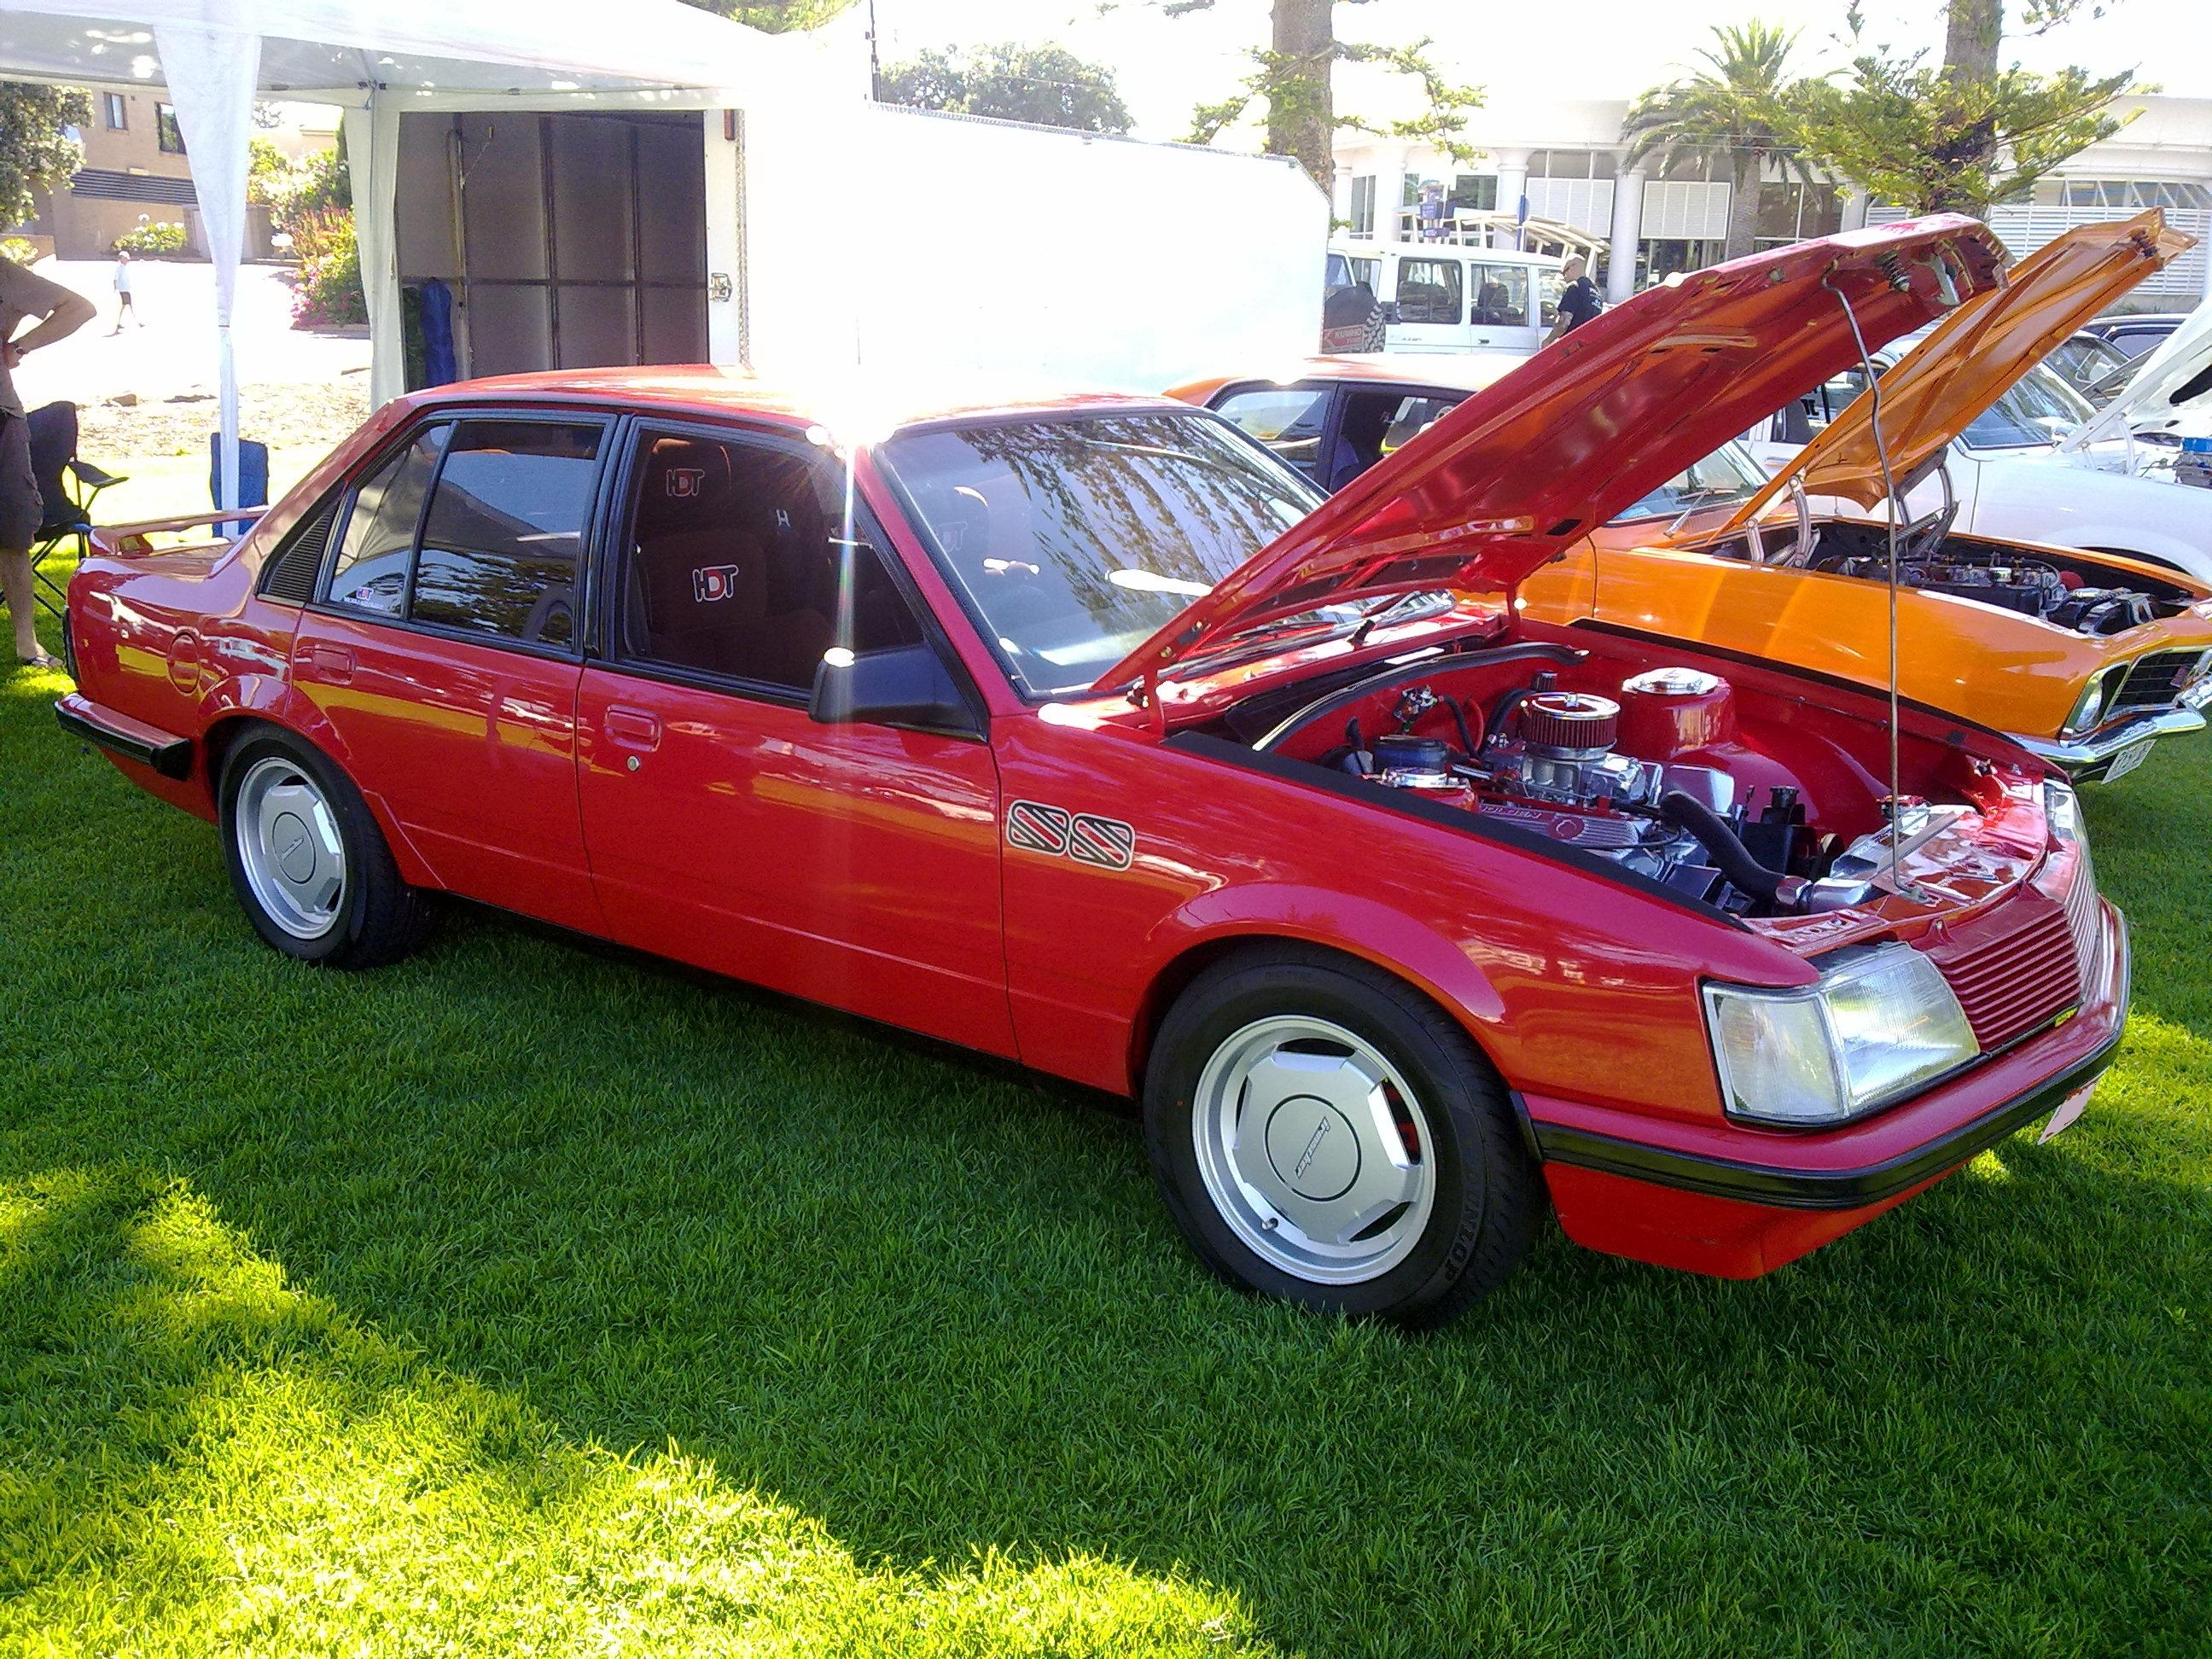 stinktube's 1982 Holden Commodore